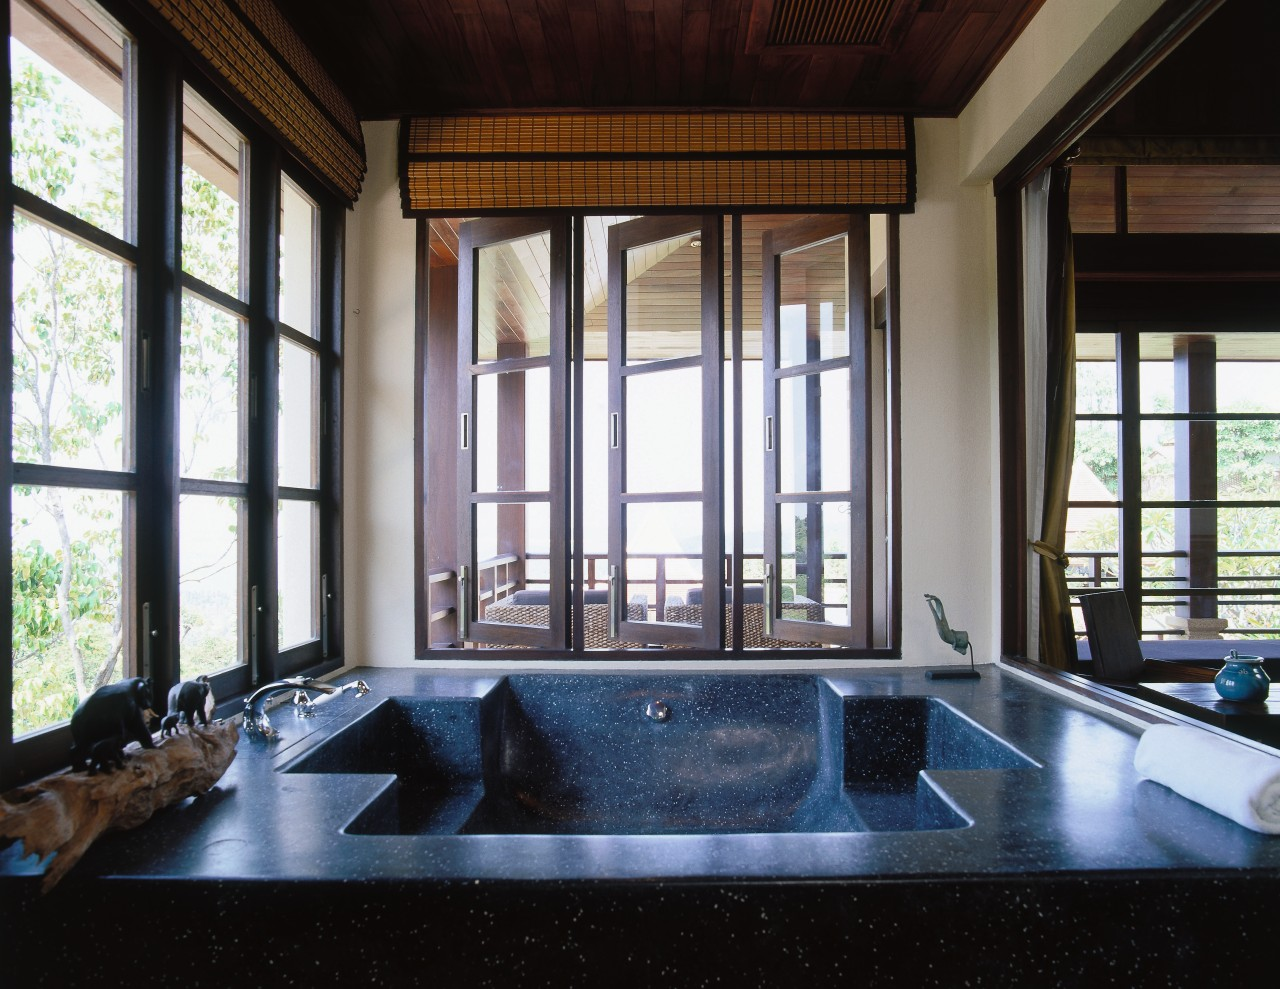 view of the terazzo bath that looks out architecture, daylighting, estate, interior design, property, real estate, window, black